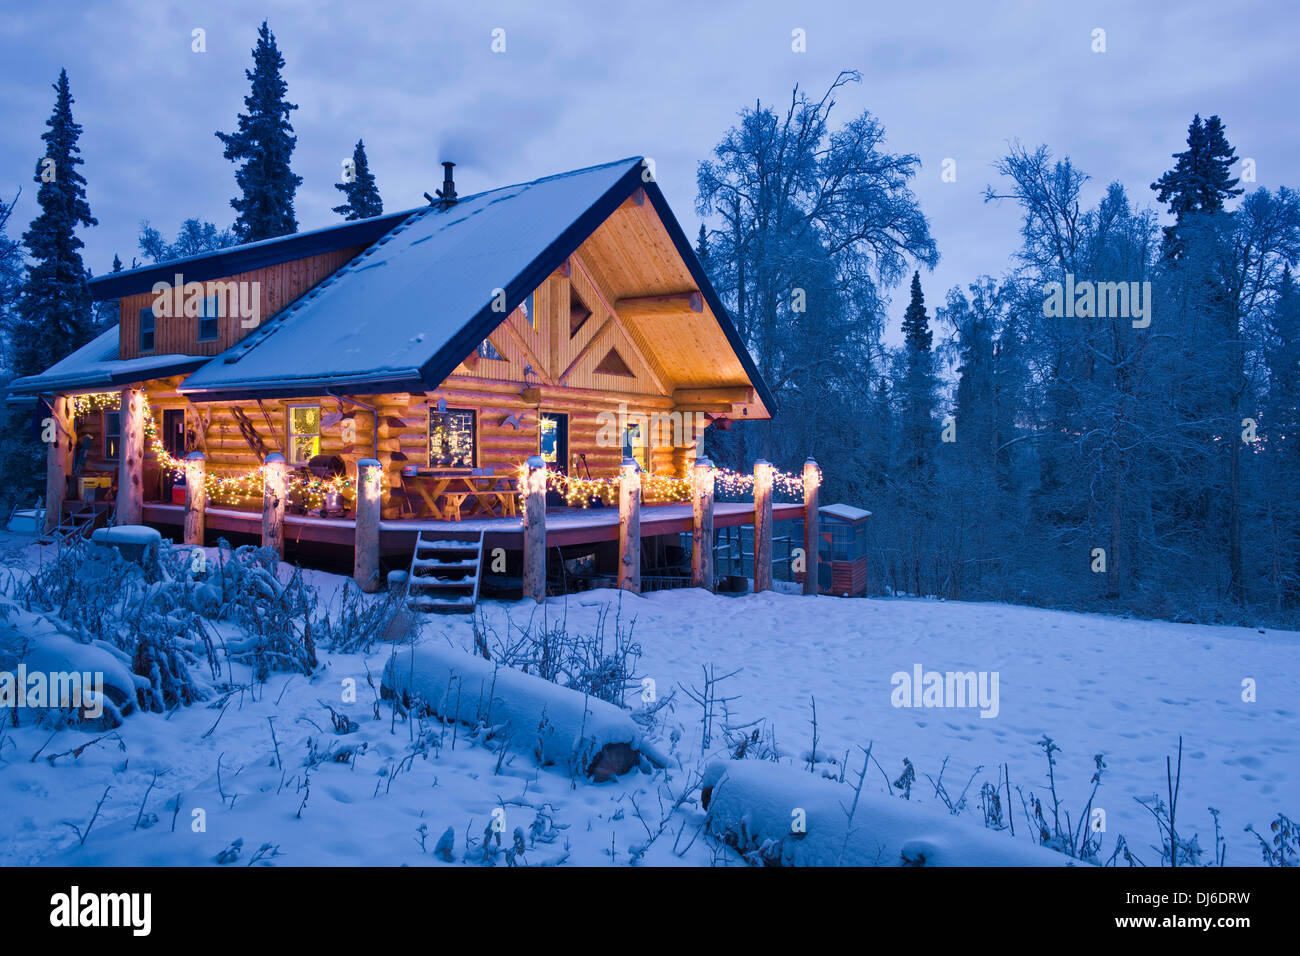 Log cabin in the woods winter - Log Cabin In The Woods Decorated With Christmas Lights At Twilight Near Fairbanks Alaska During Winter